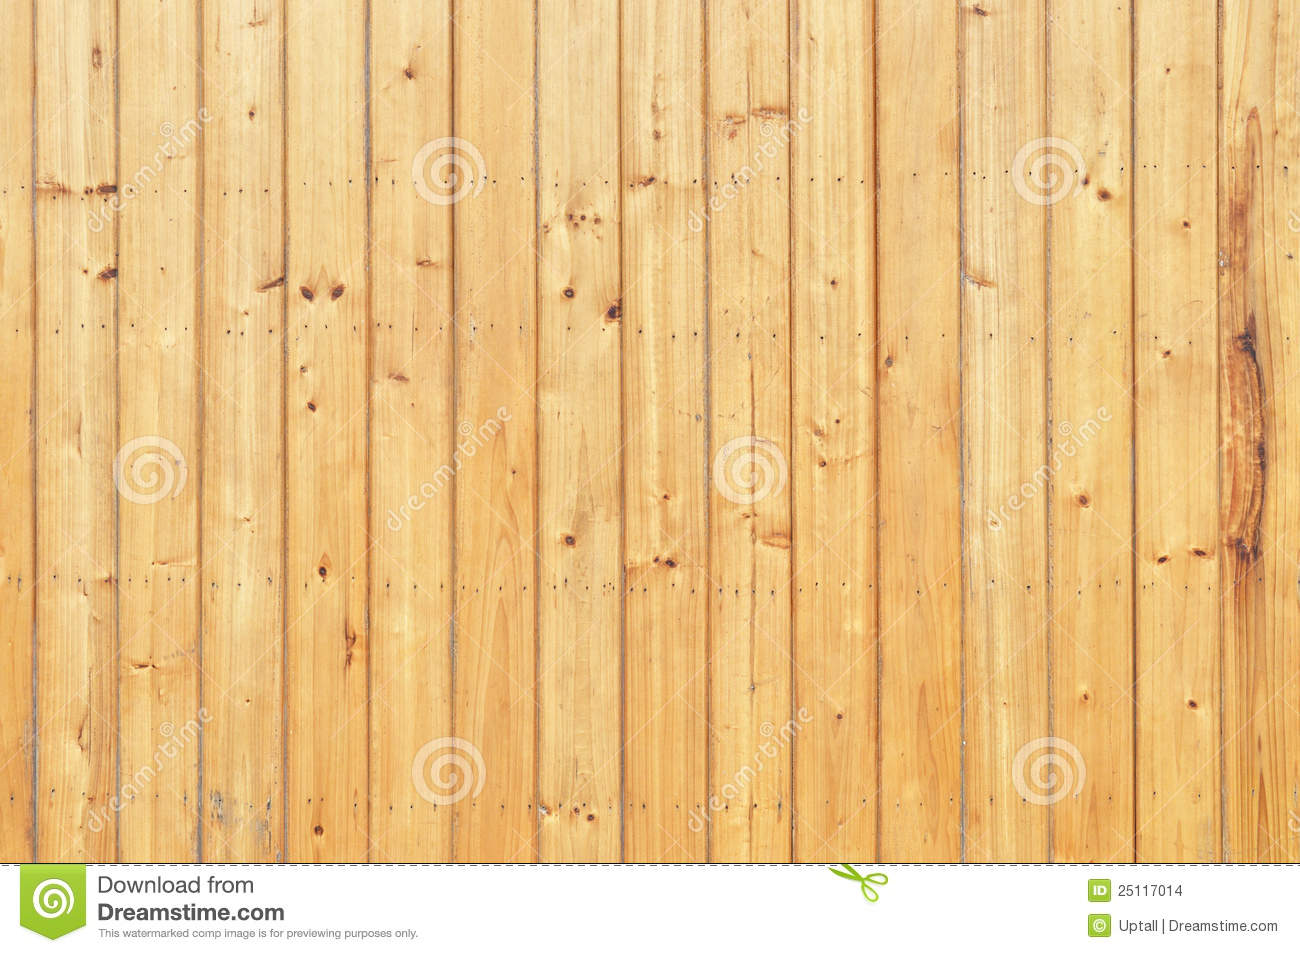 background brown building nails panel wall wood ... - Wood Panel Background Stock Images - Image: 25117014